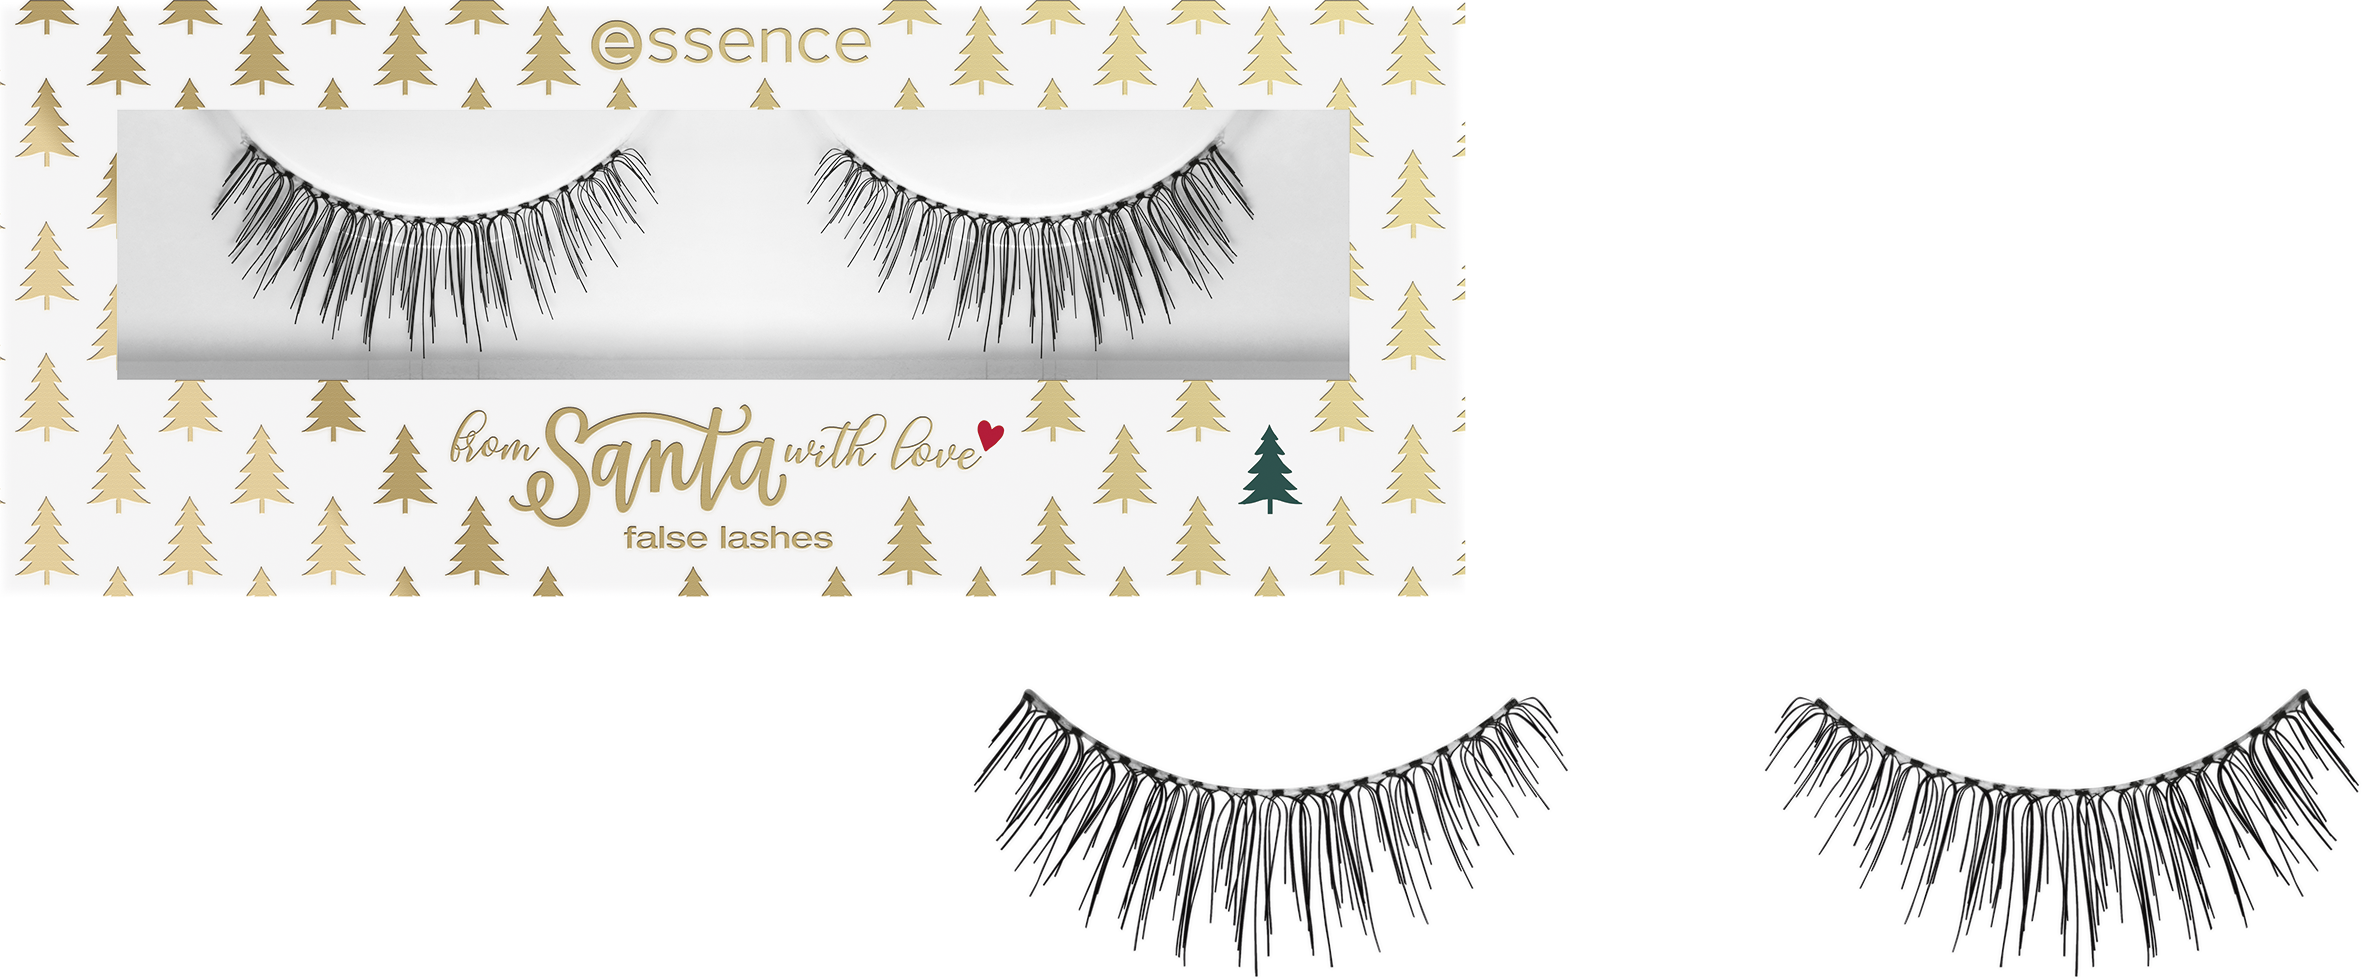 4059729234896 essence from Santa with love false lashes 01 Image Front View Full Open png - PREVIEW │ESSENCE TREND EDITION 'FROM SANTA WITH LOVE'